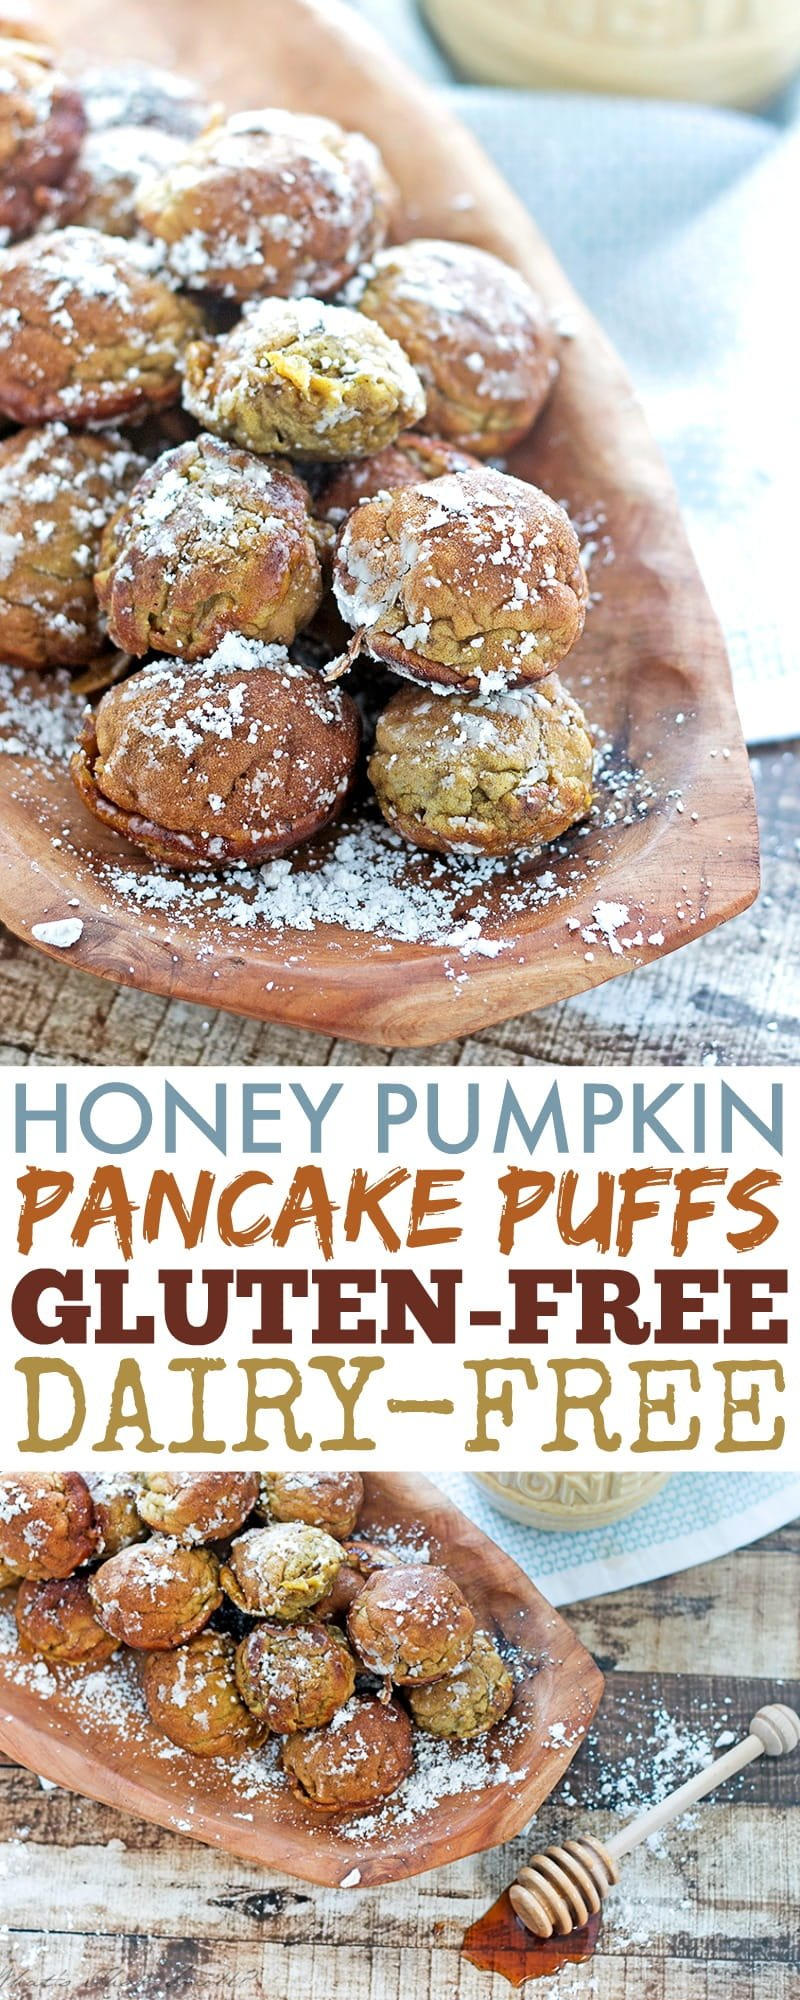 Honey Pumpkin Pancake Puffs: Gluten-free and dairy-free, these pumpkin Ebelskiver Danish pancake balls are a fun and delicious treat for breakfast or anytime.